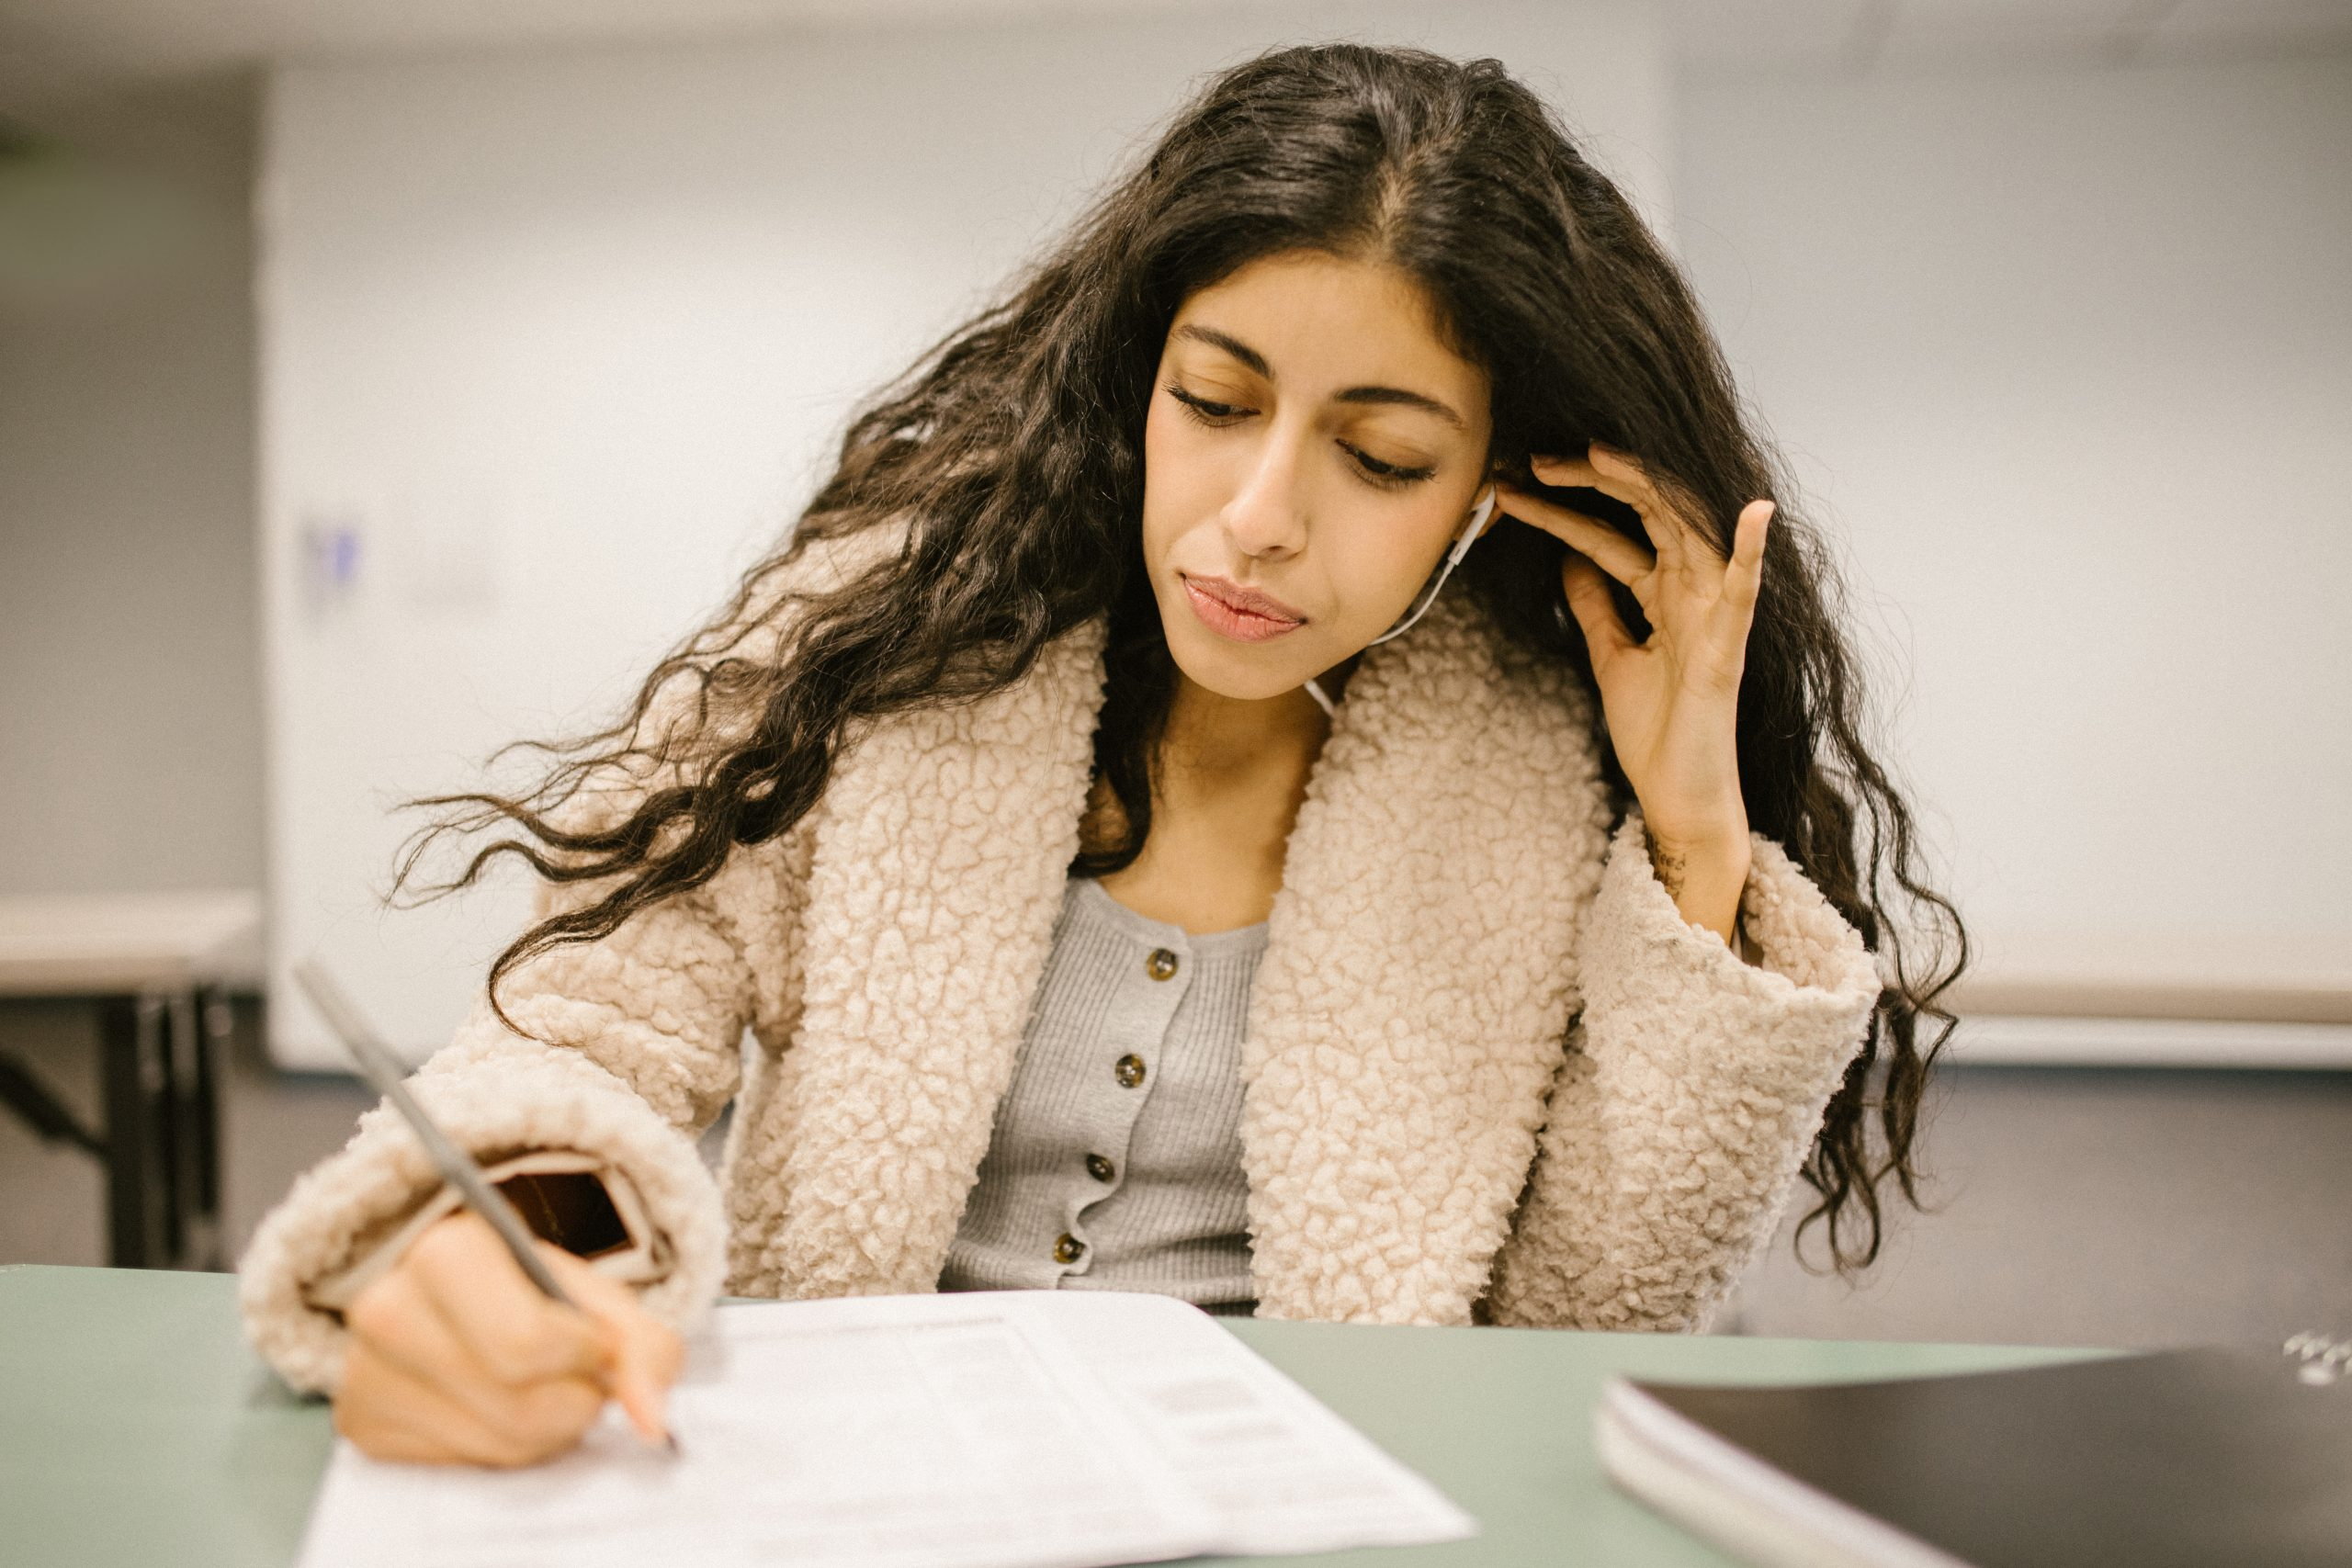 Student cheating during an exam by using an earphone